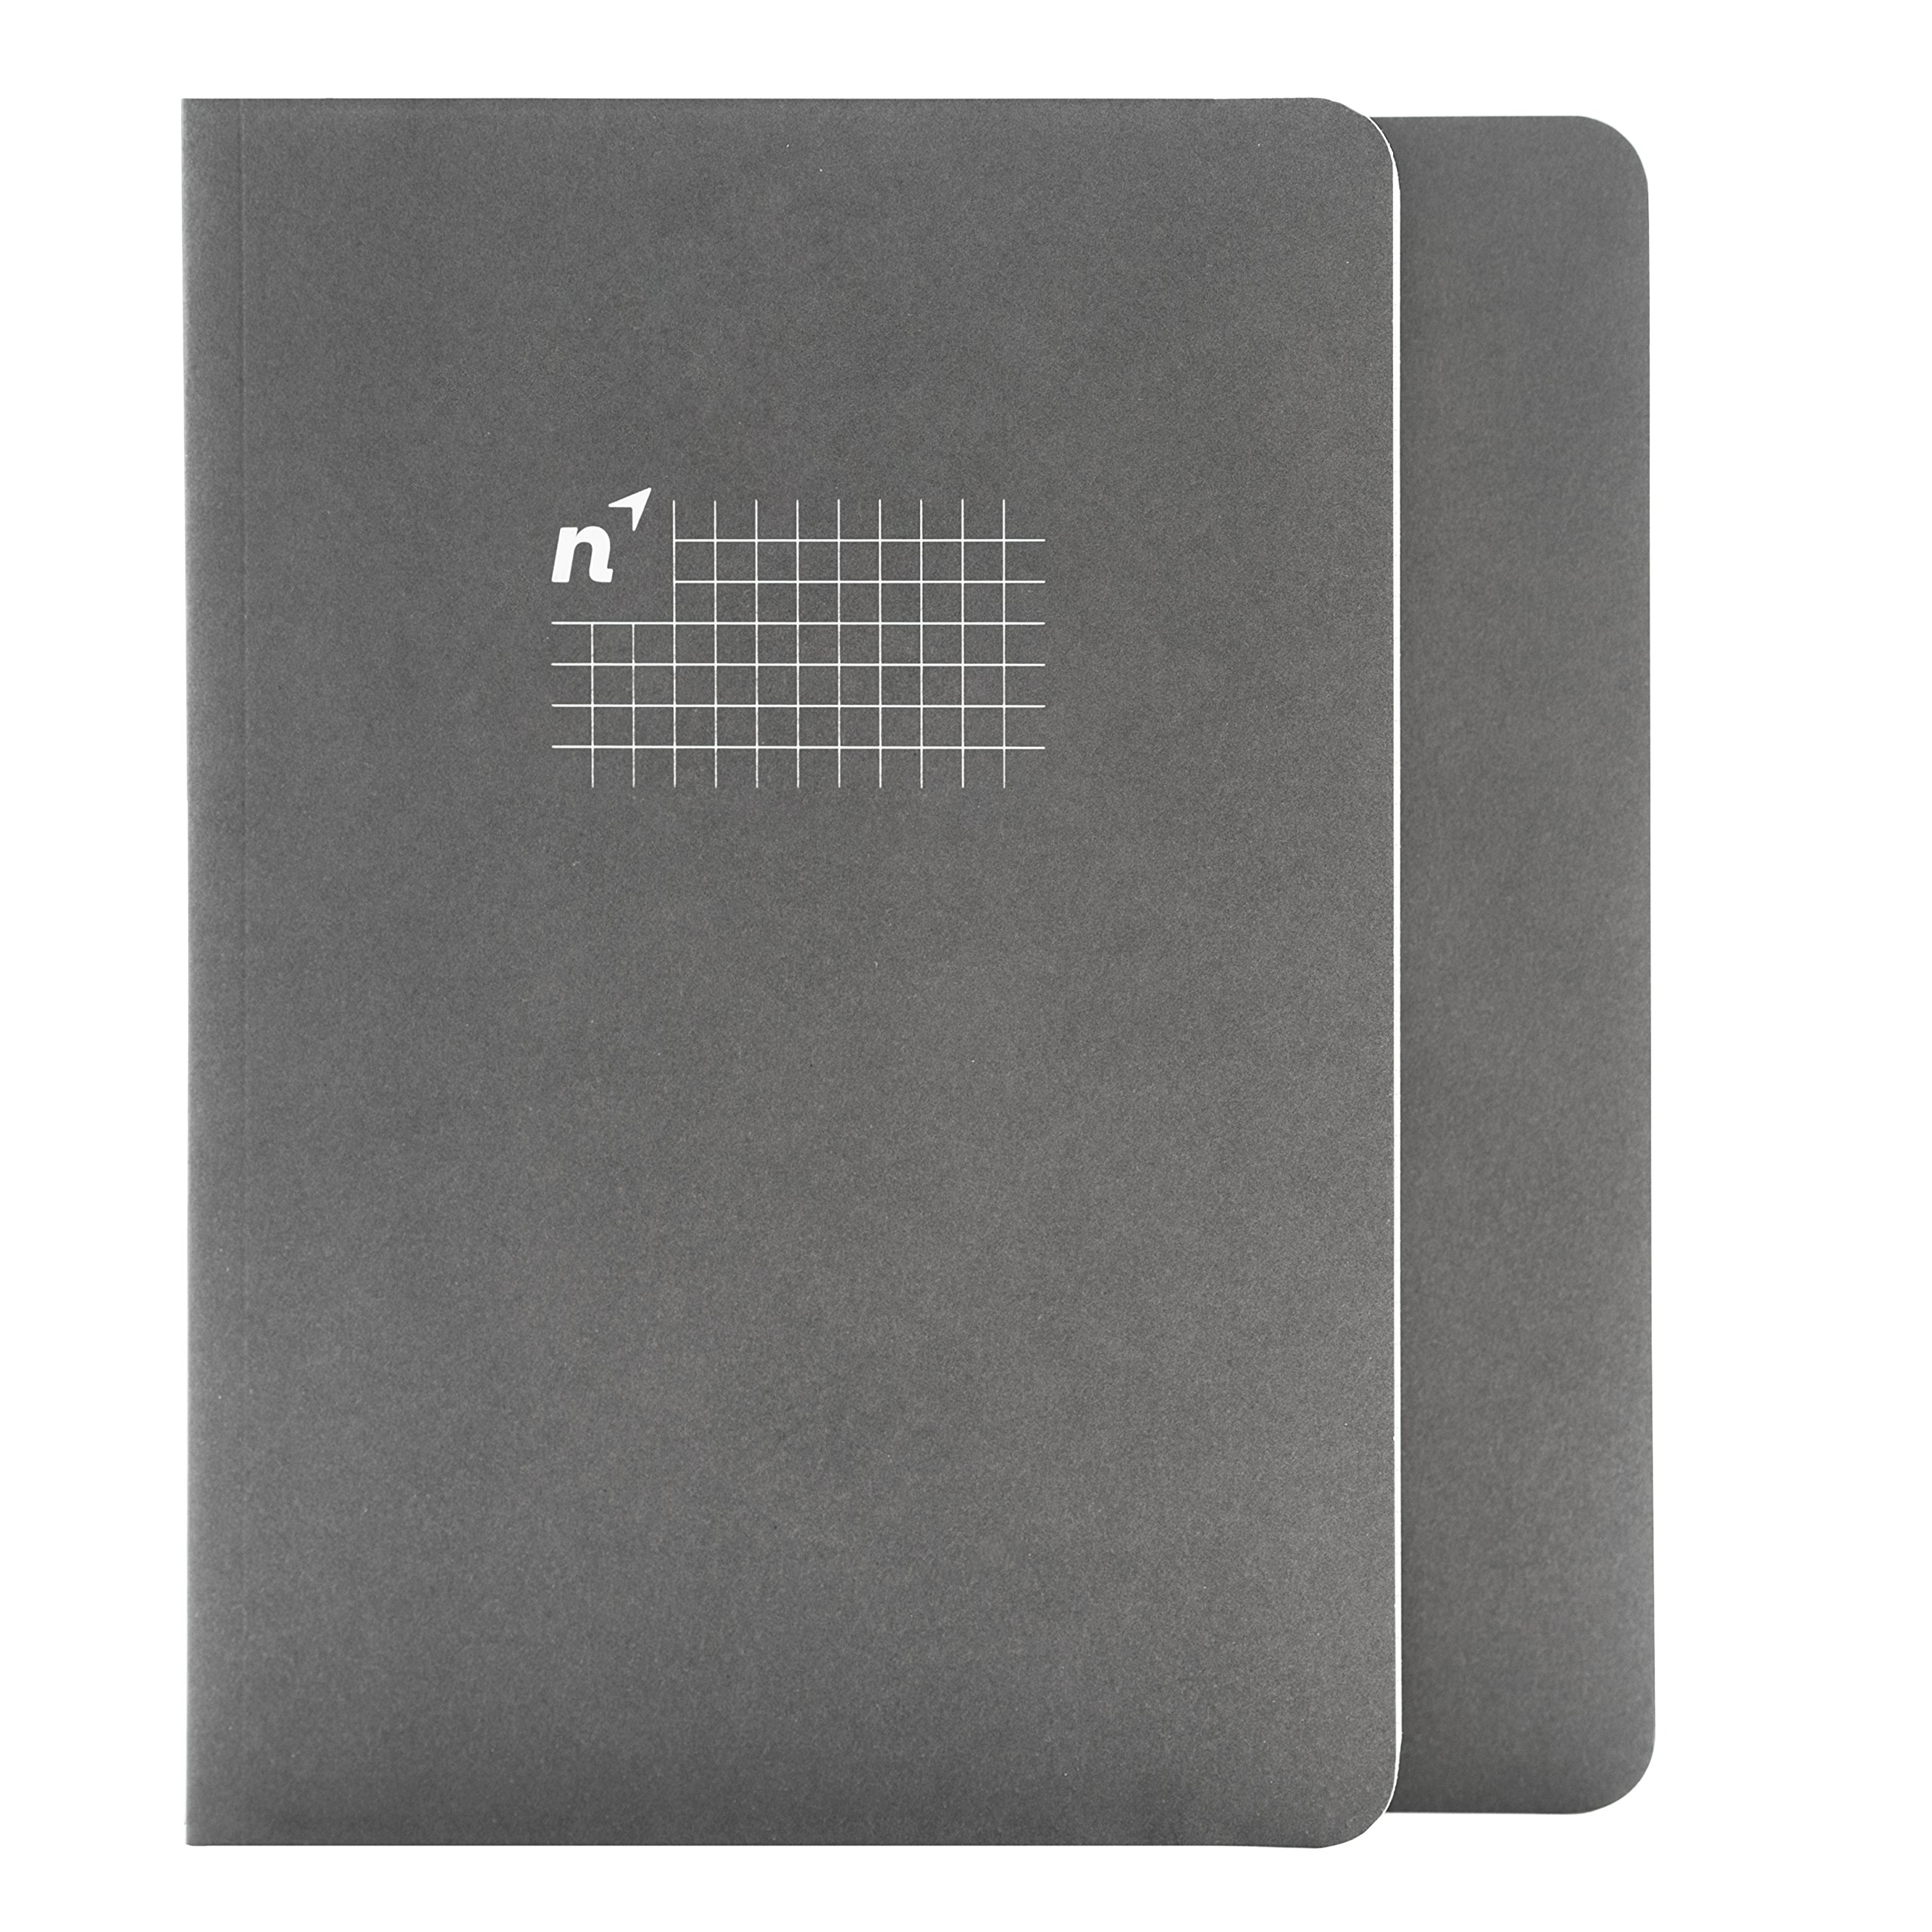 Northbooks USA Eco A5 Graph Paper Notebook/Ledger | Notepad for School, Work, Travel or Personal Use | 144 Sewn 5mm Square/Gridded Pages, Premium Recycled Cream Paper | 5.8 x 8.2 inch, 2 Pack